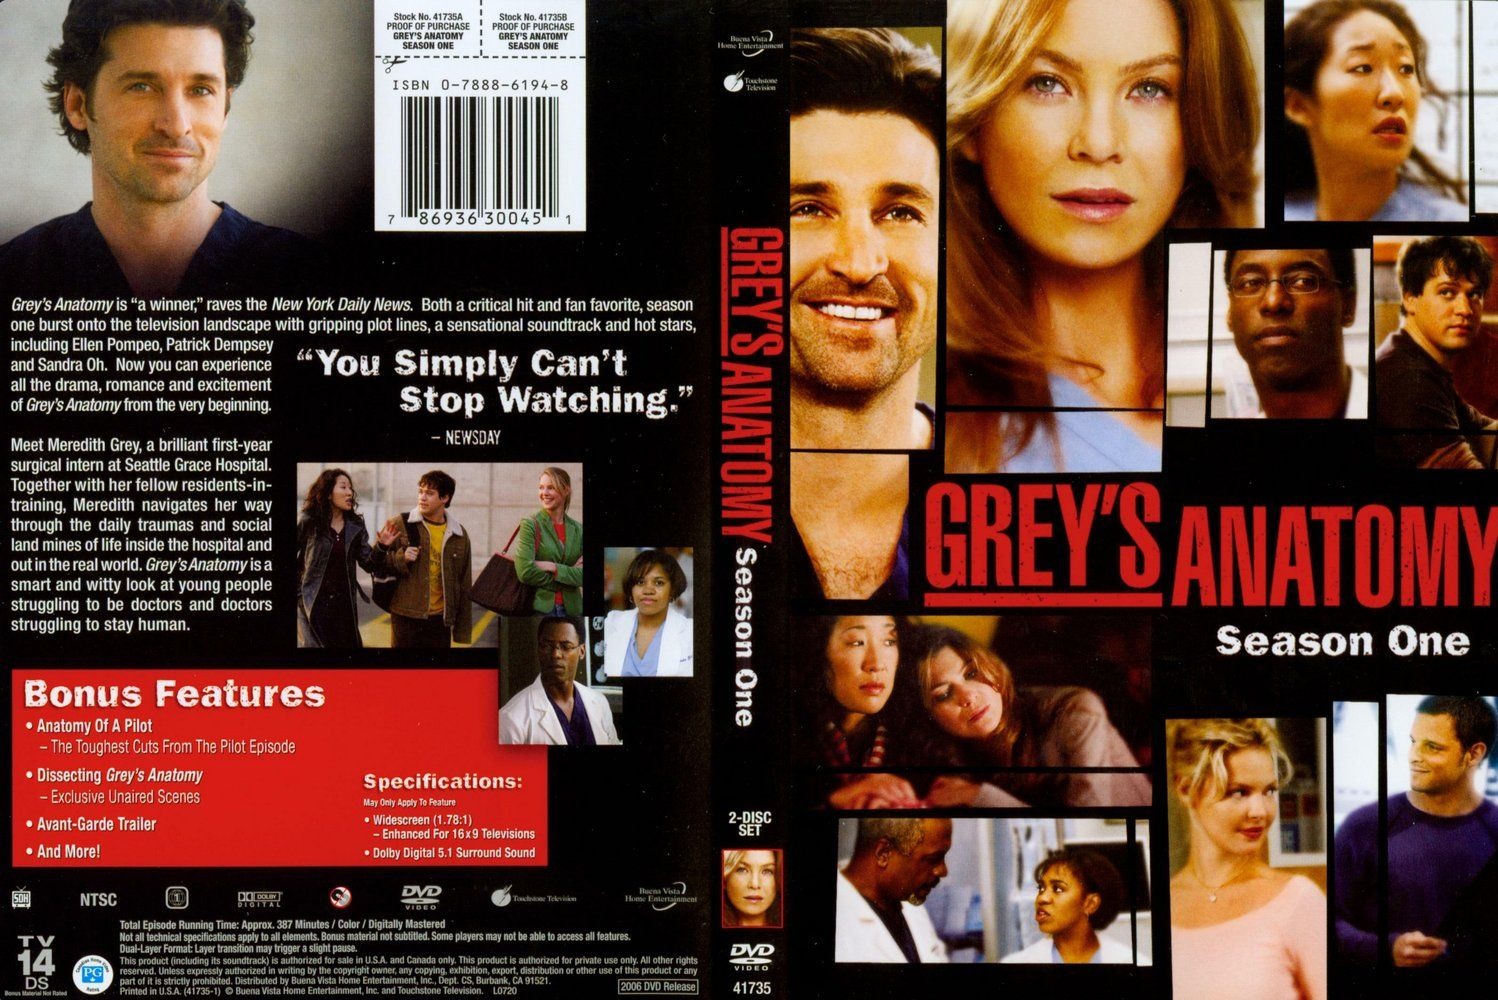 Greys Anatomy Season 1 Dvd Us Dvd Covers Cover Century Over